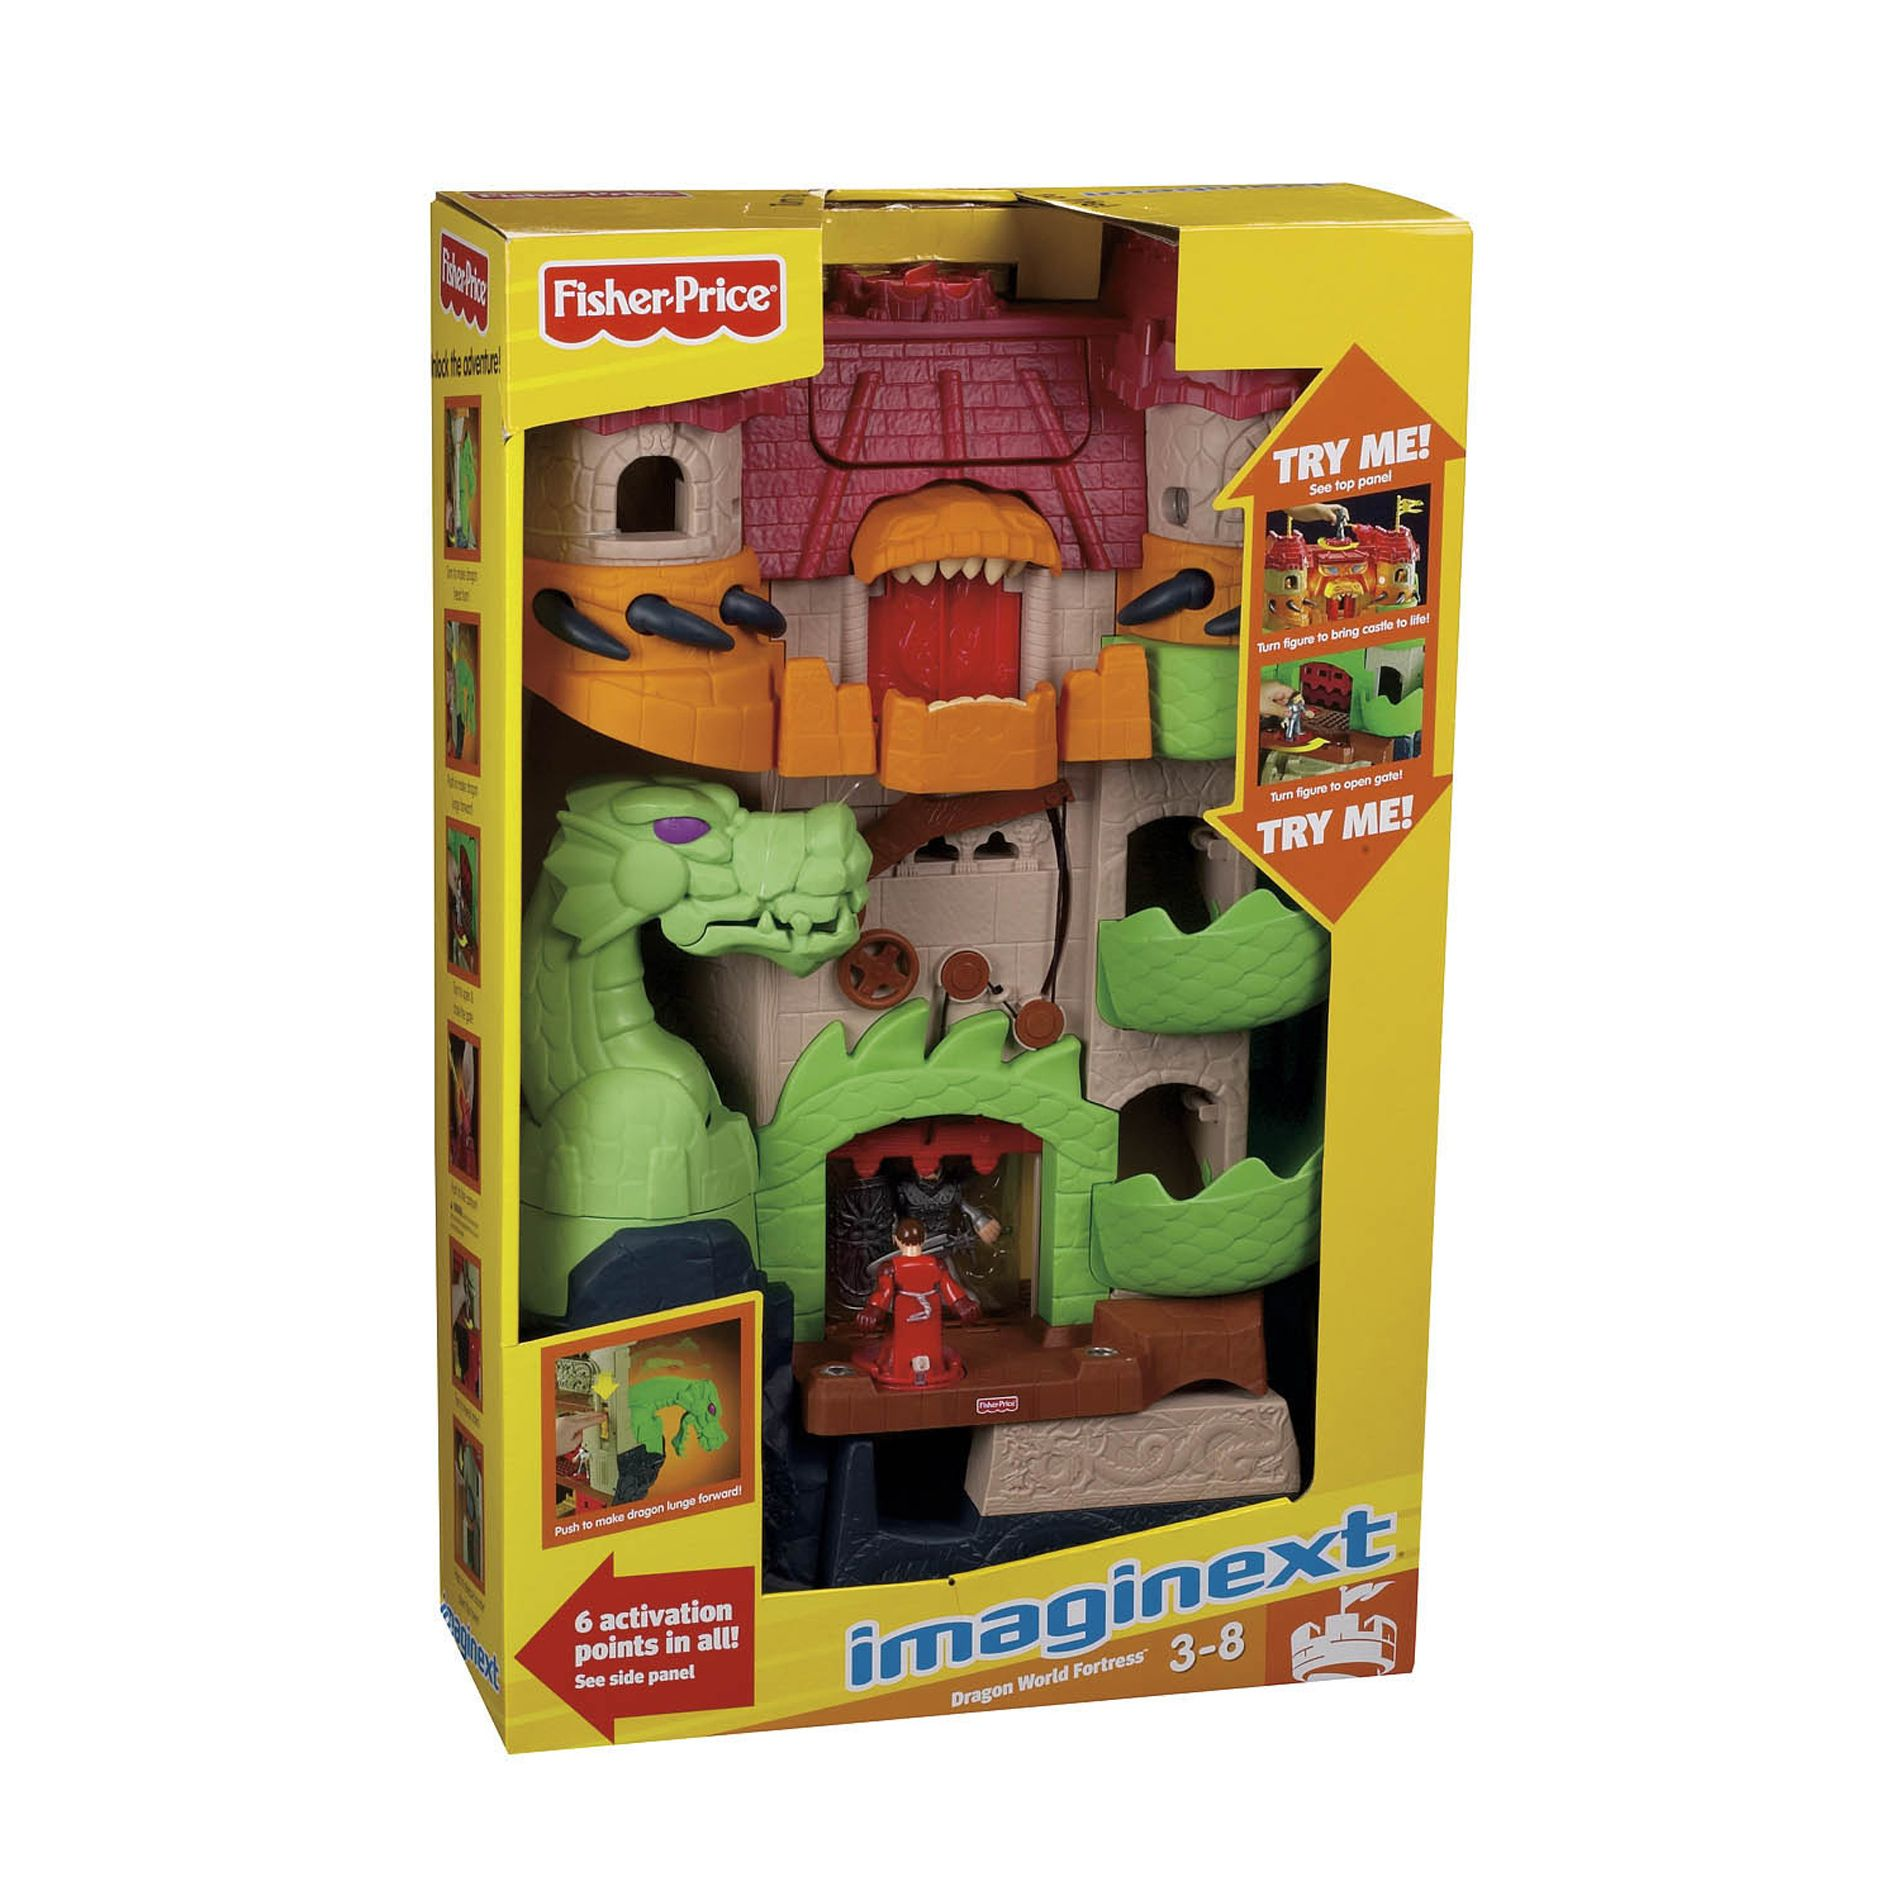 Imaginext Dragon World Fortress - Toys & Games Action